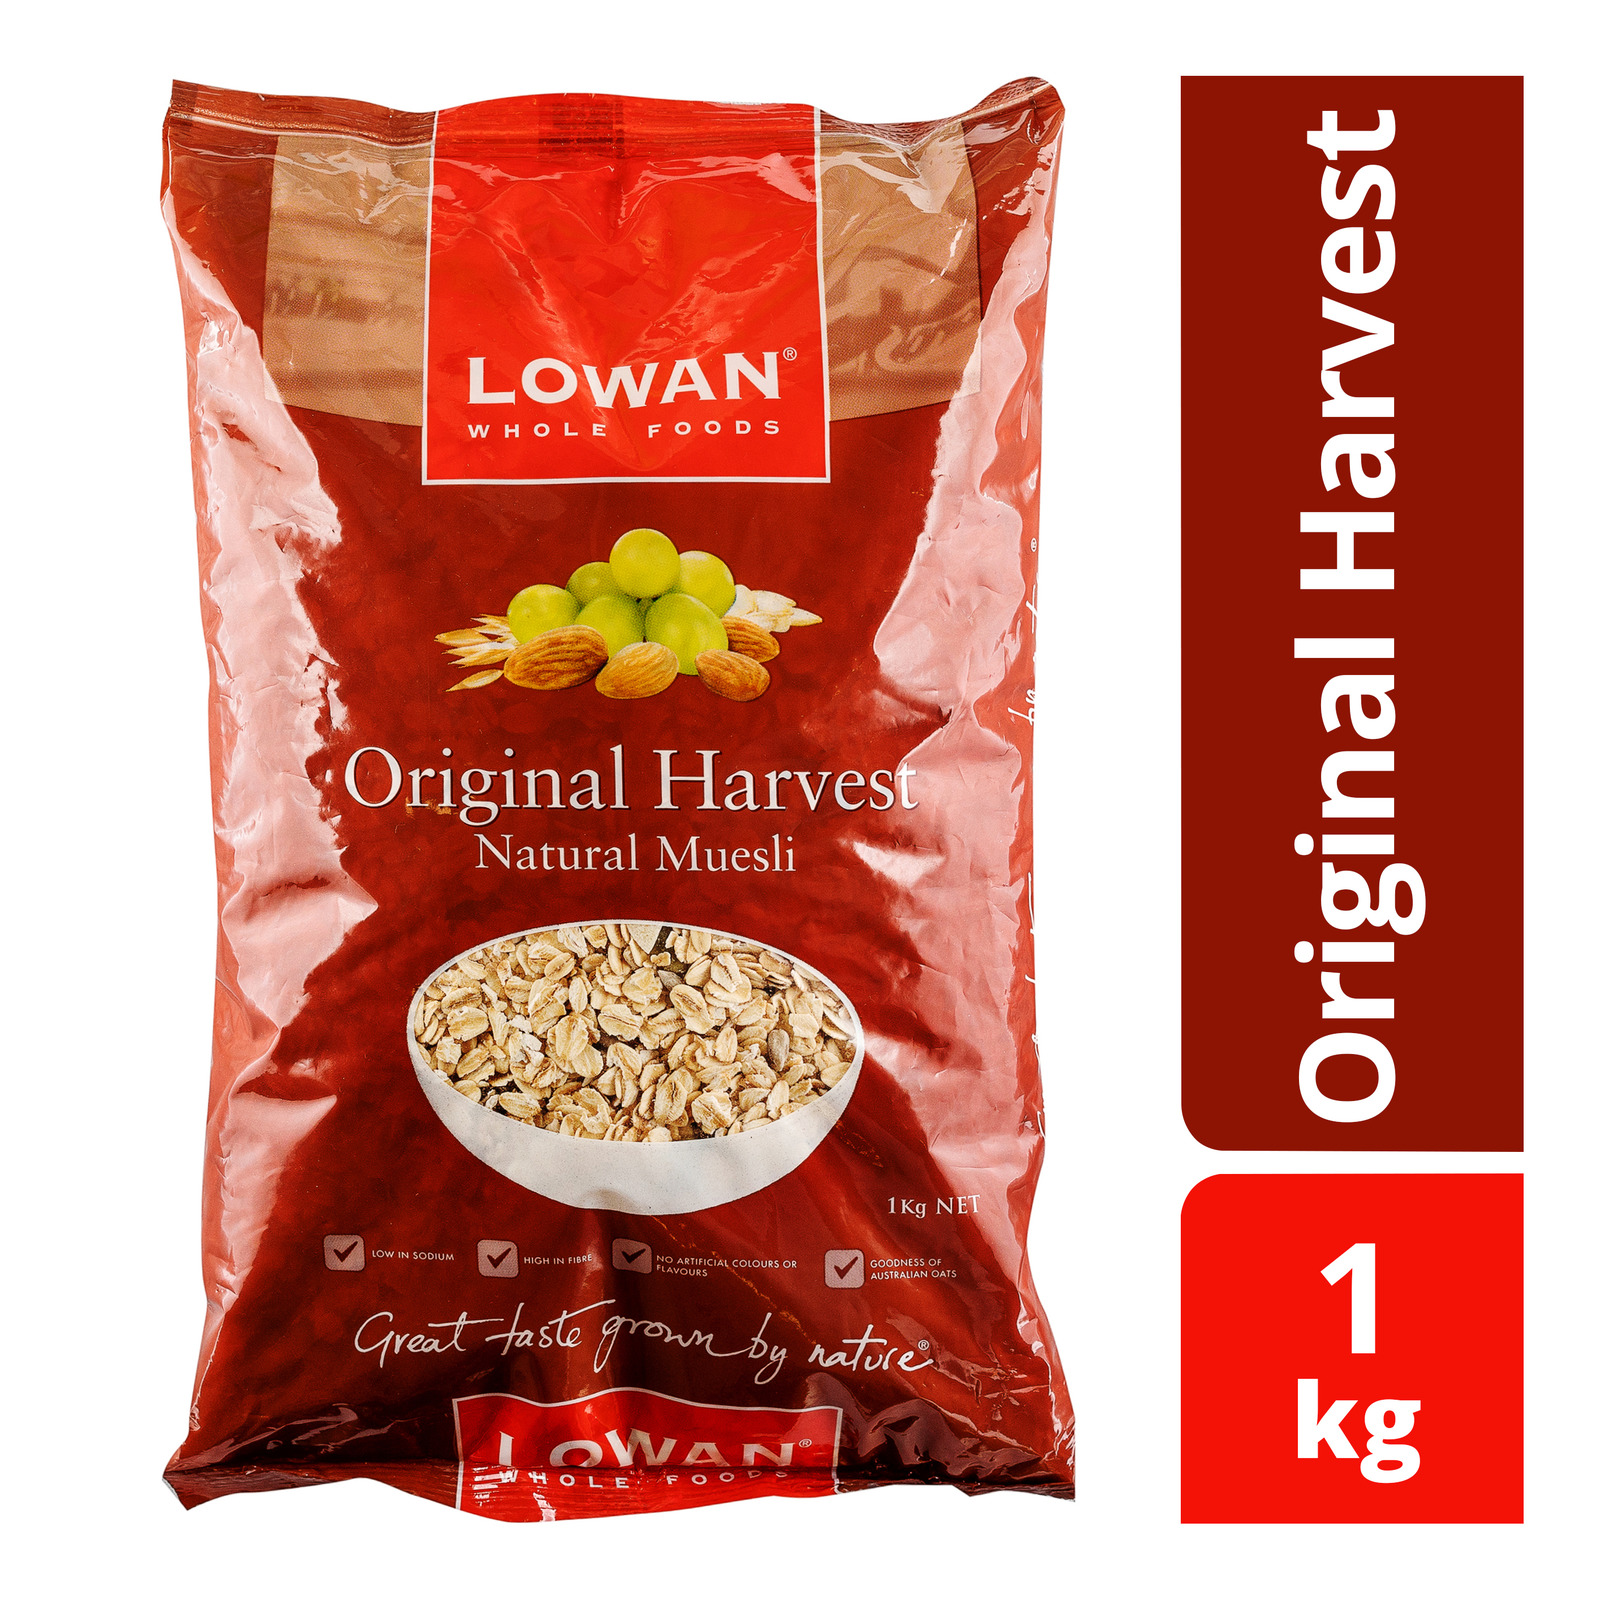 Lowan Natural Muesli - Original Harvest